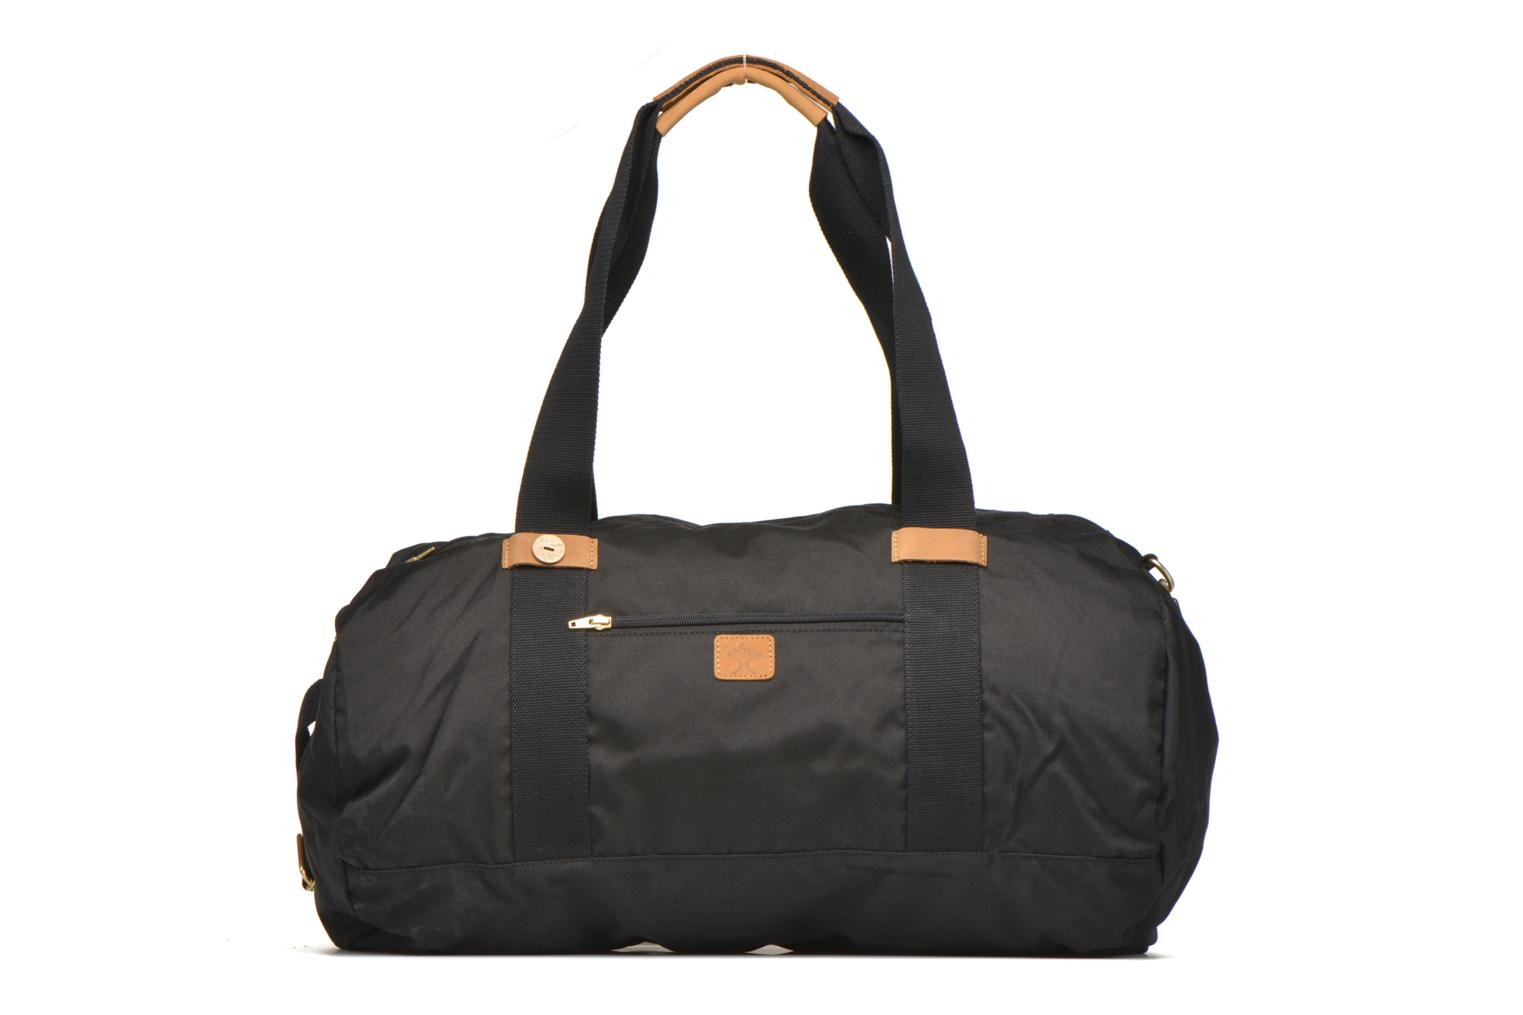 Big duffle bag nylon Black